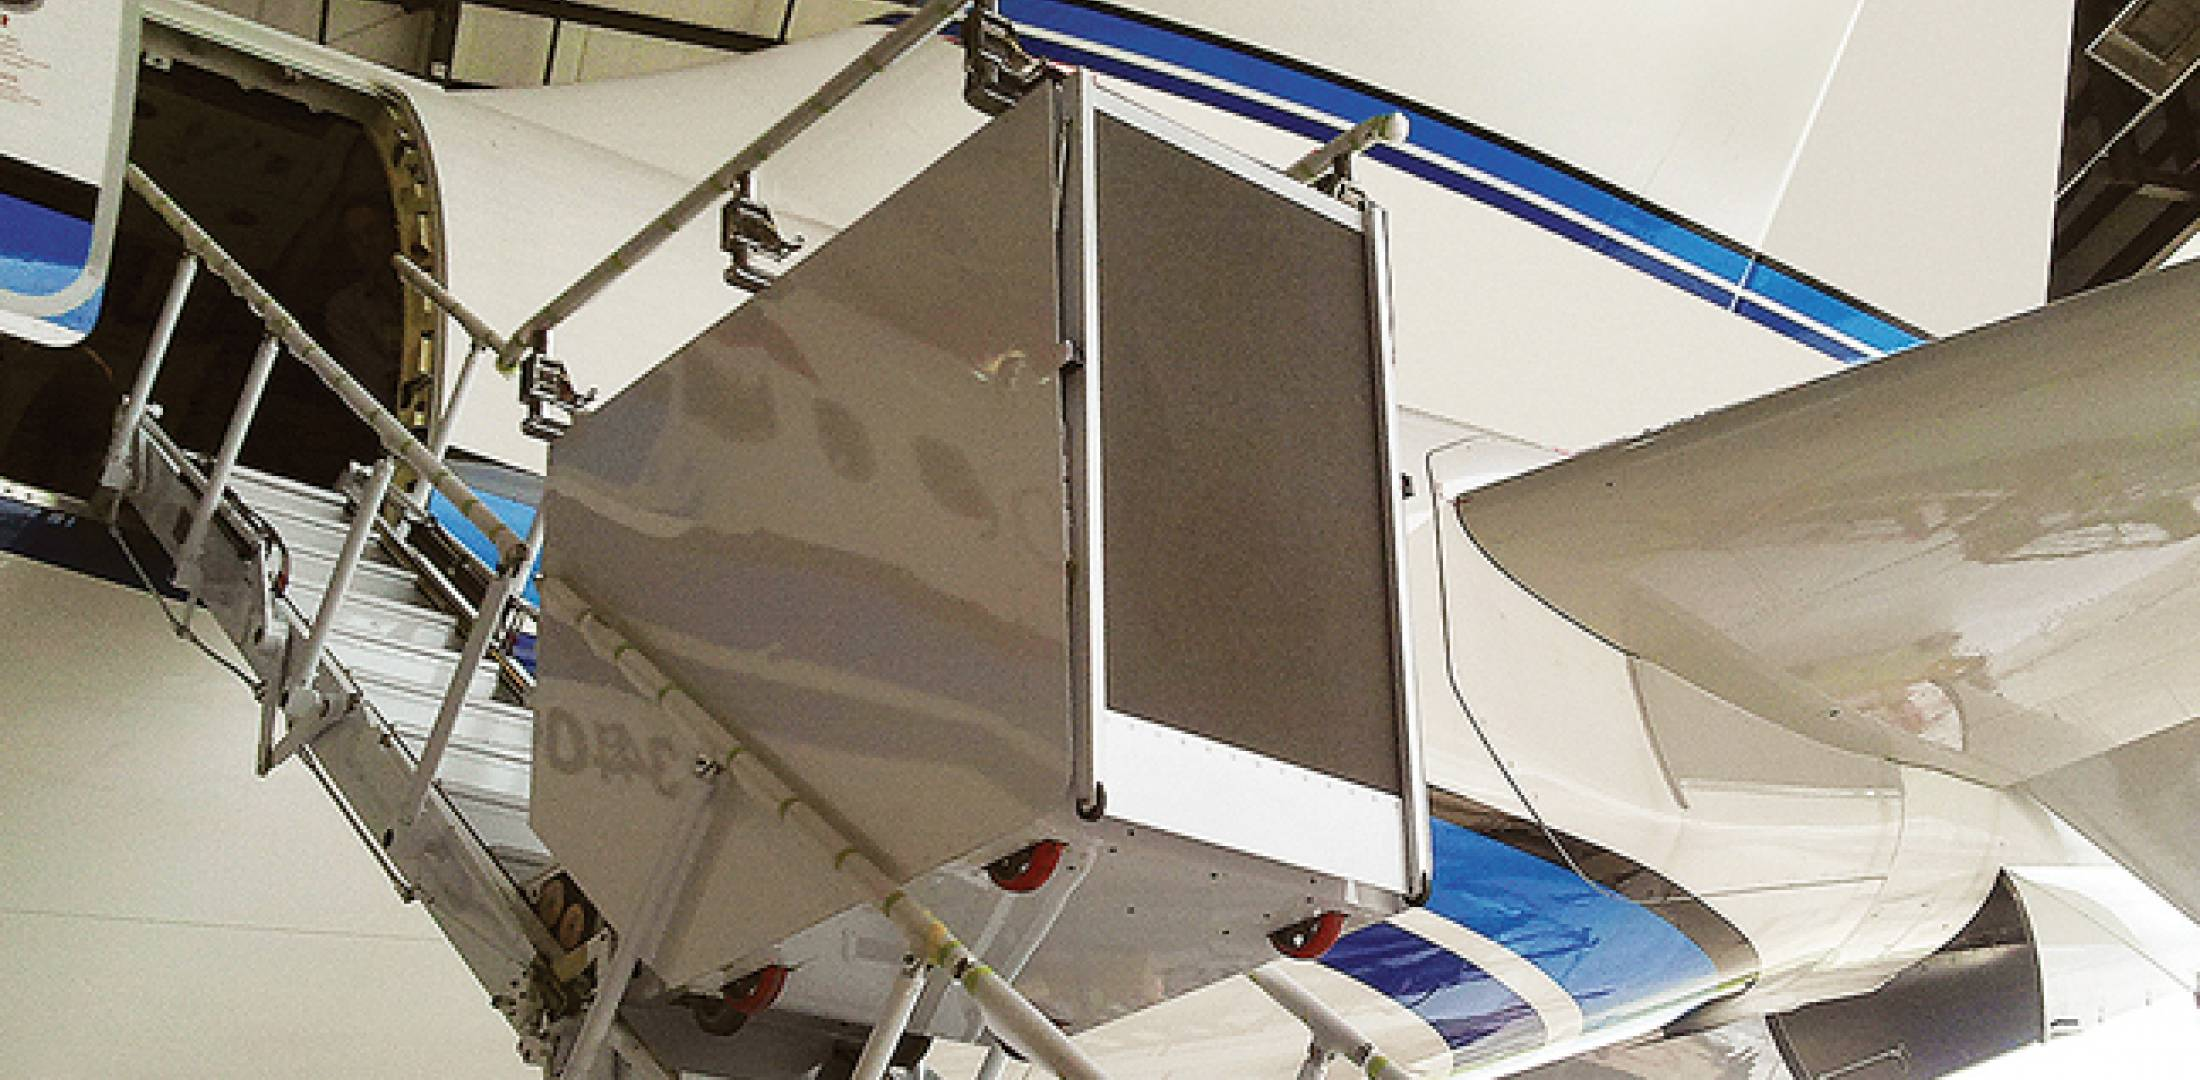 The Aero Lift was recently installed in the aft door in an Airbus A340-500.